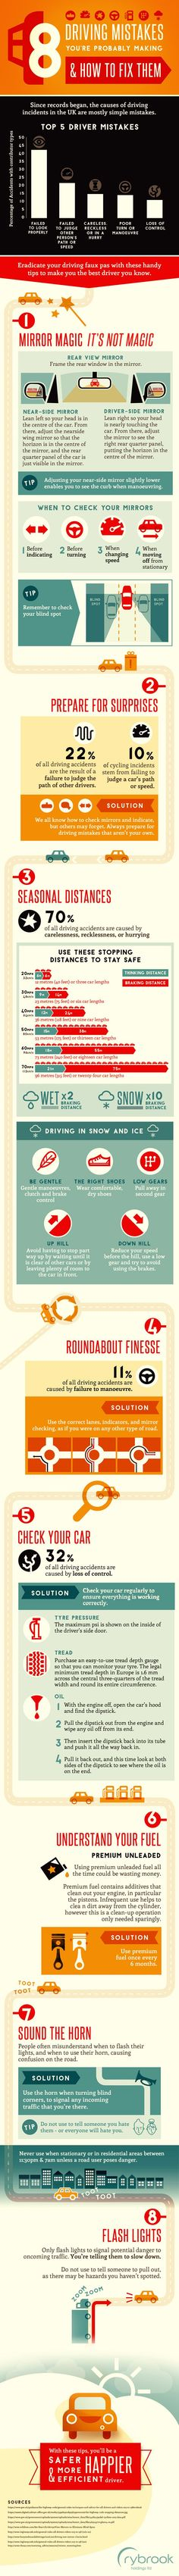 8 Driving Mistakes You Didn't Know You Were Making #Infographic #Driving